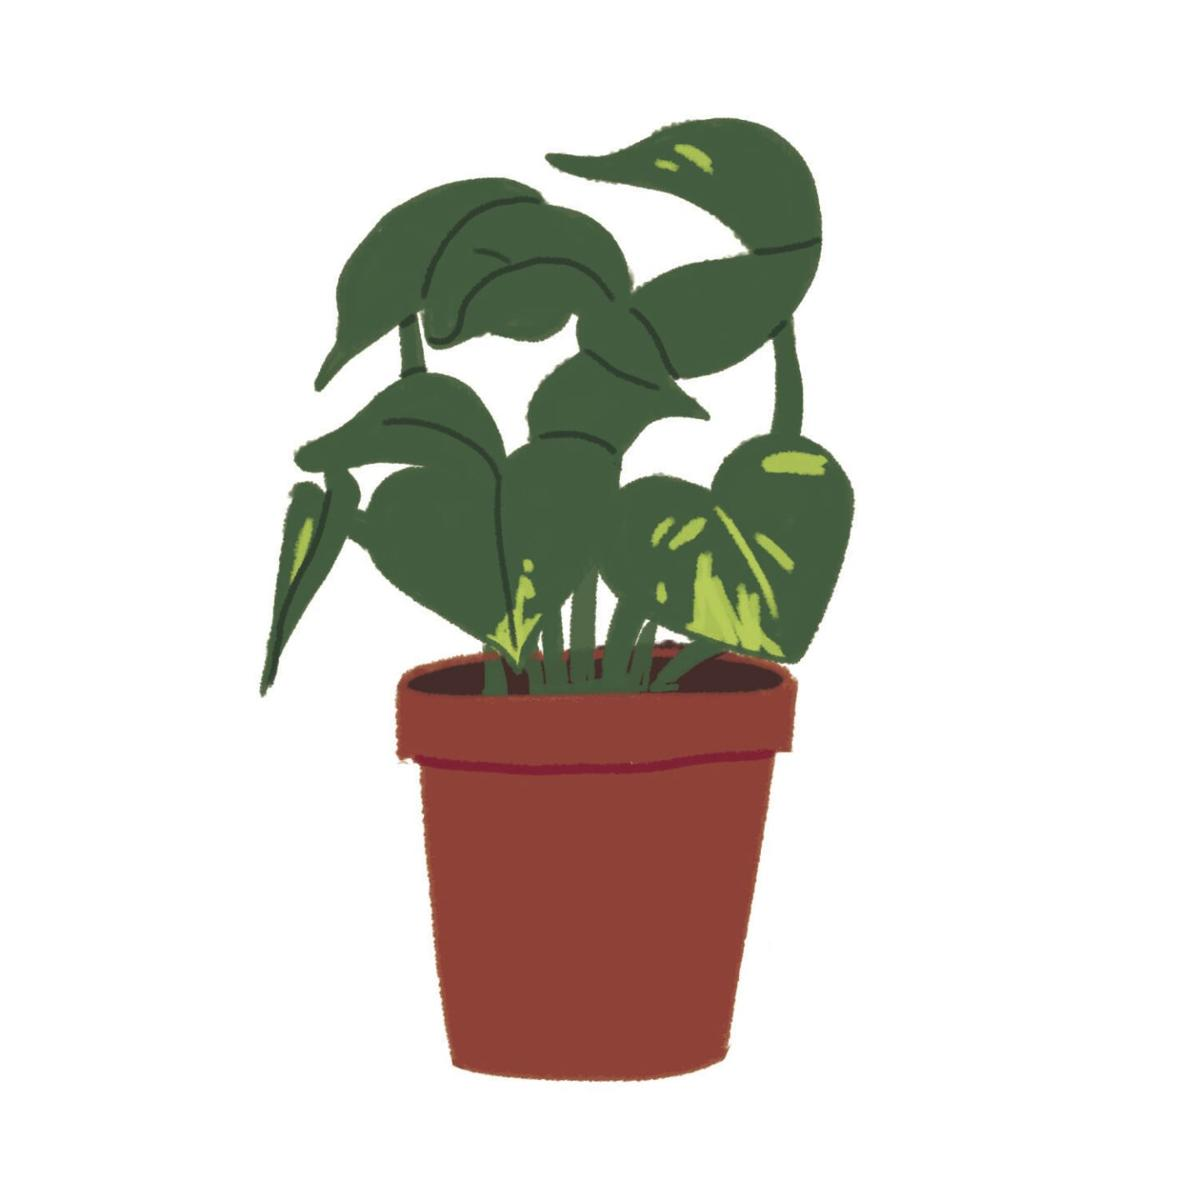 Plant parenting 101: the easiest plants for students to raise